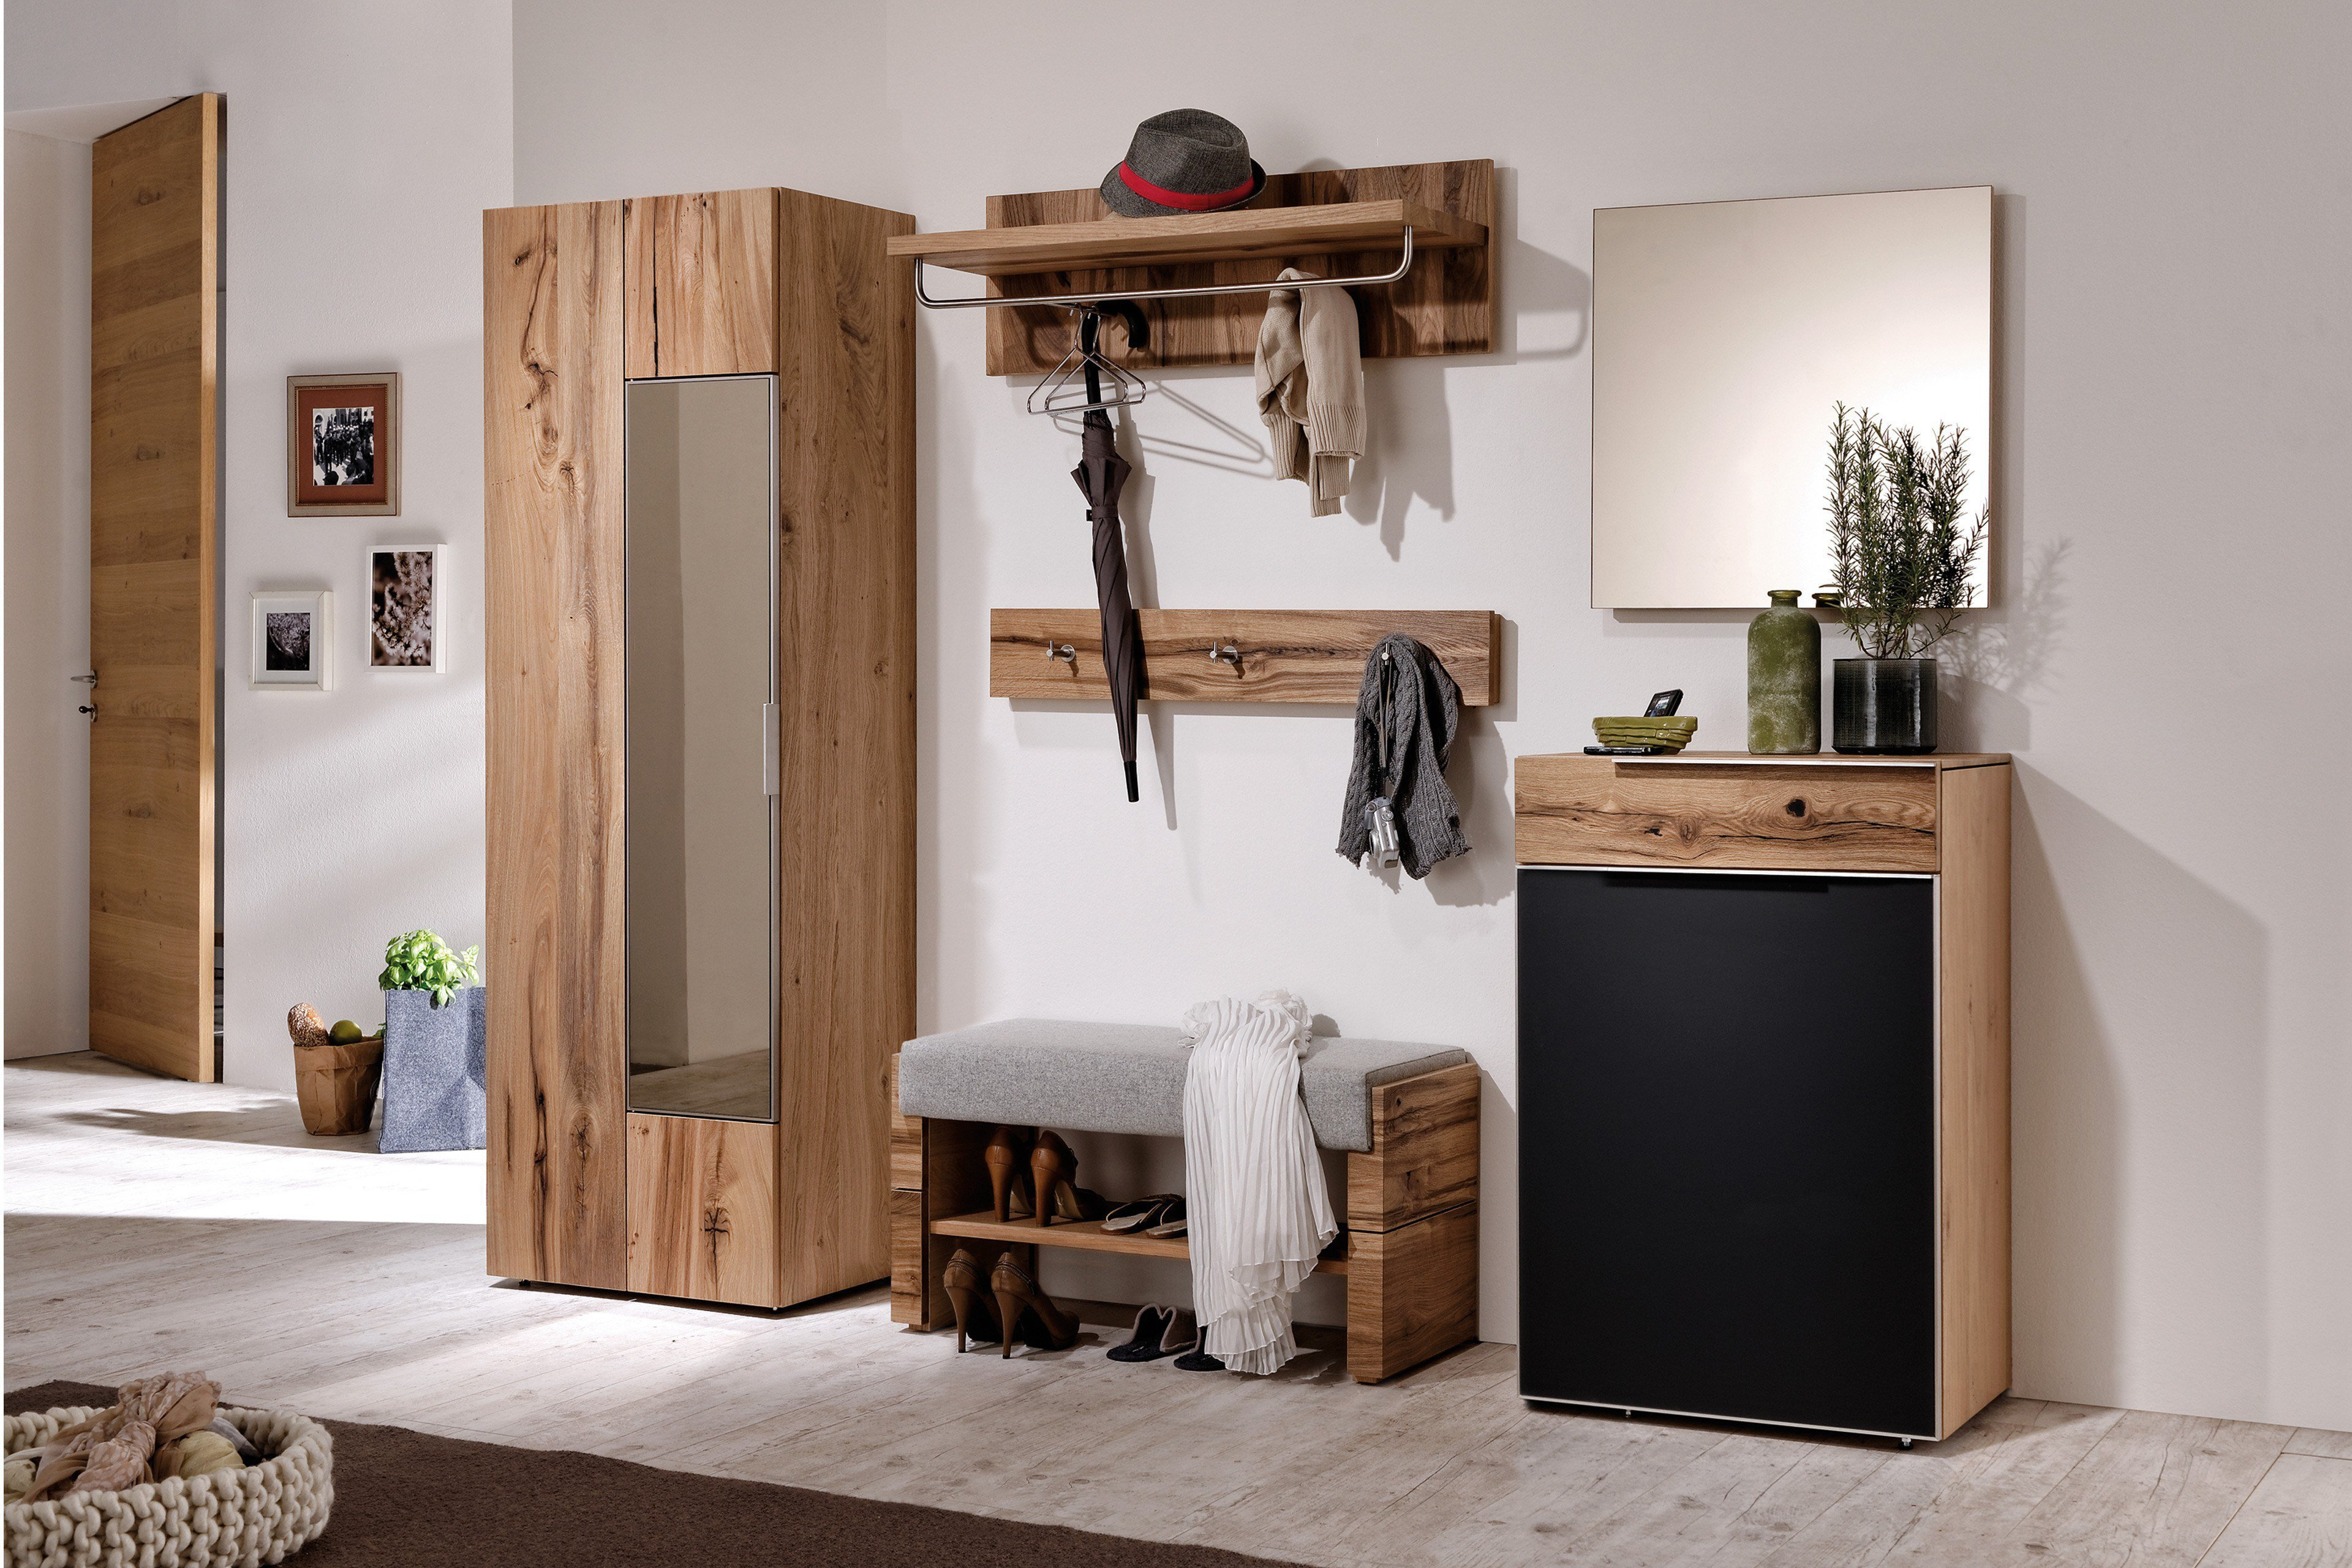 garderobe v alpin viento von voglauer eiche altholz m bel letz ihr online shop. Black Bedroom Furniture Sets. Home Design Ideas